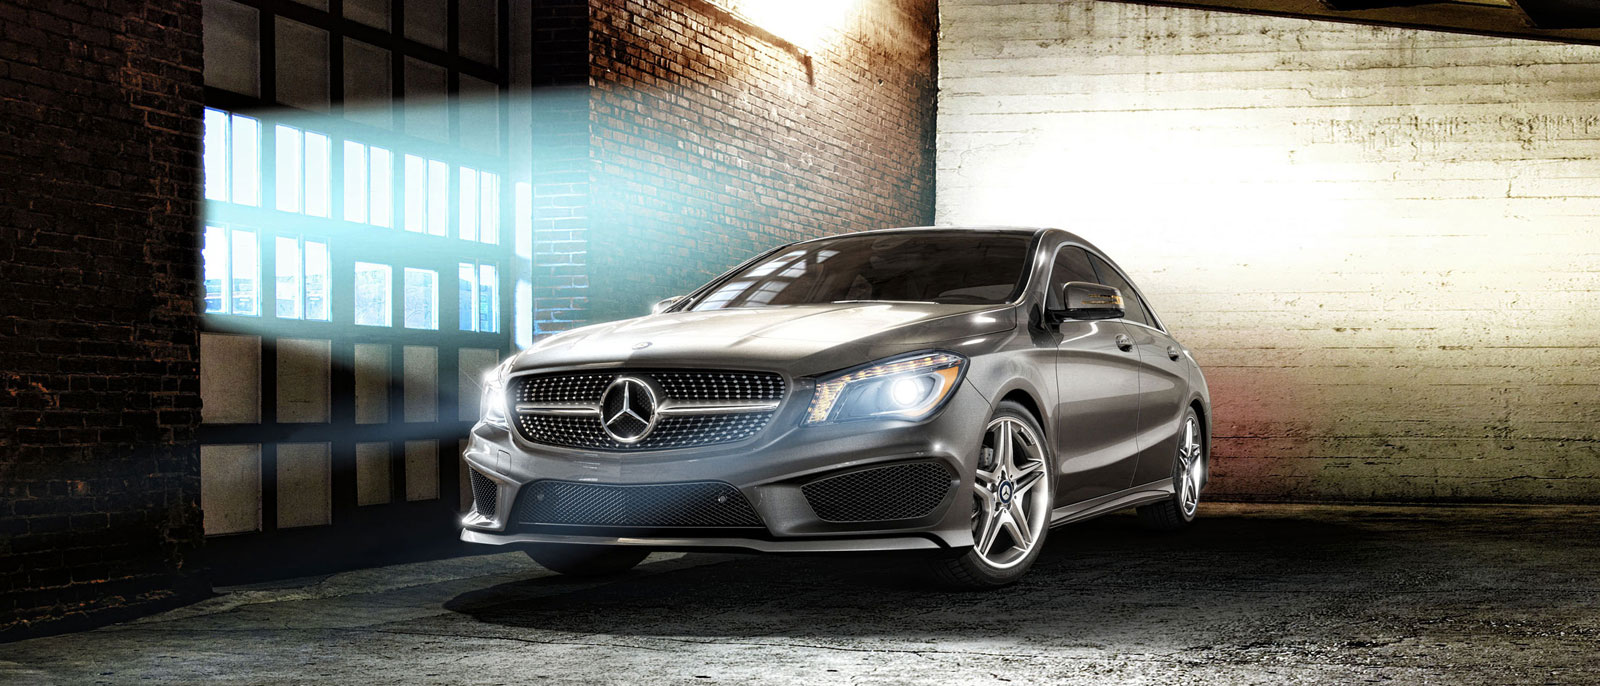 Autotrader stunned by smart stylish 2015 mercedes benz for Mercedes benz of richmond va